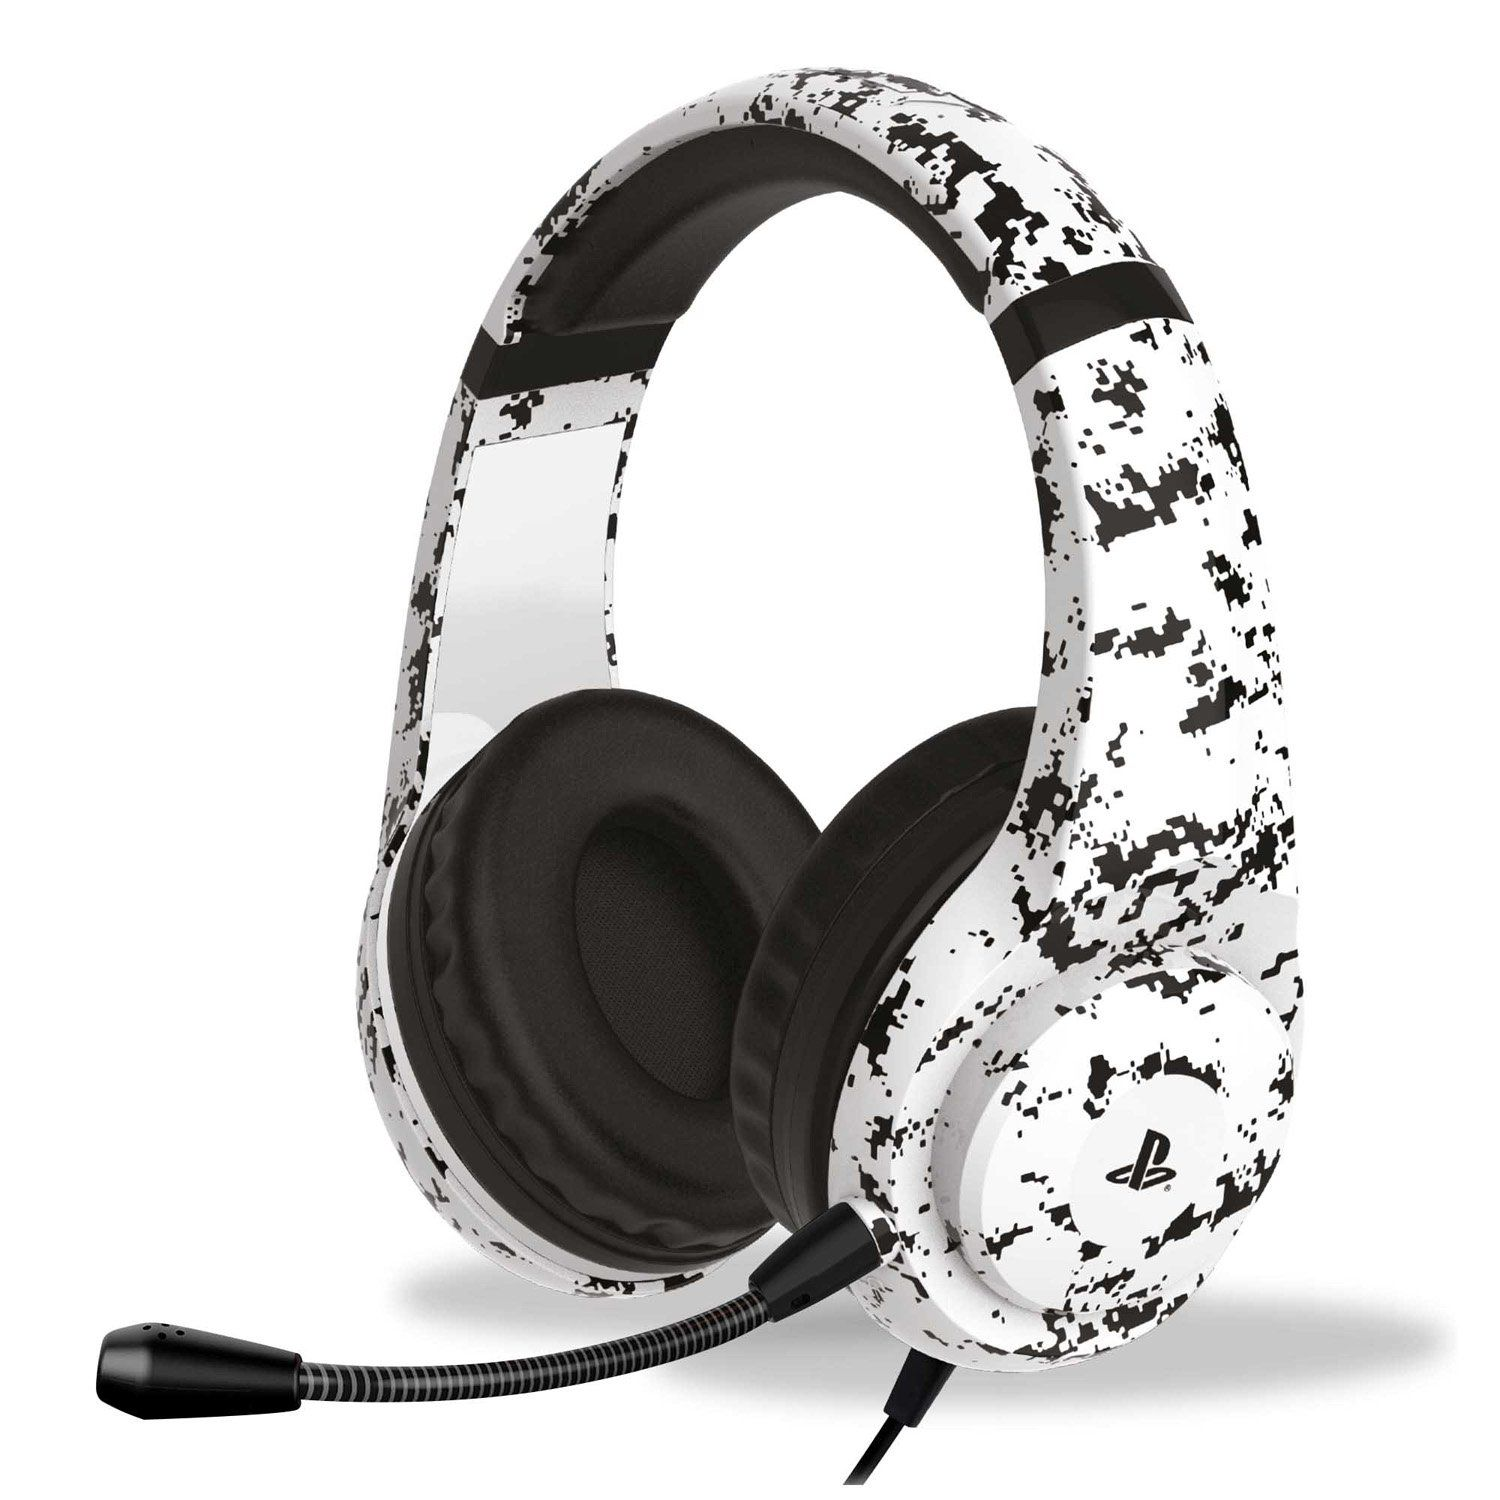 4Gamers PRO4-70 Stereo Gaming Headset (Arctic Camo)